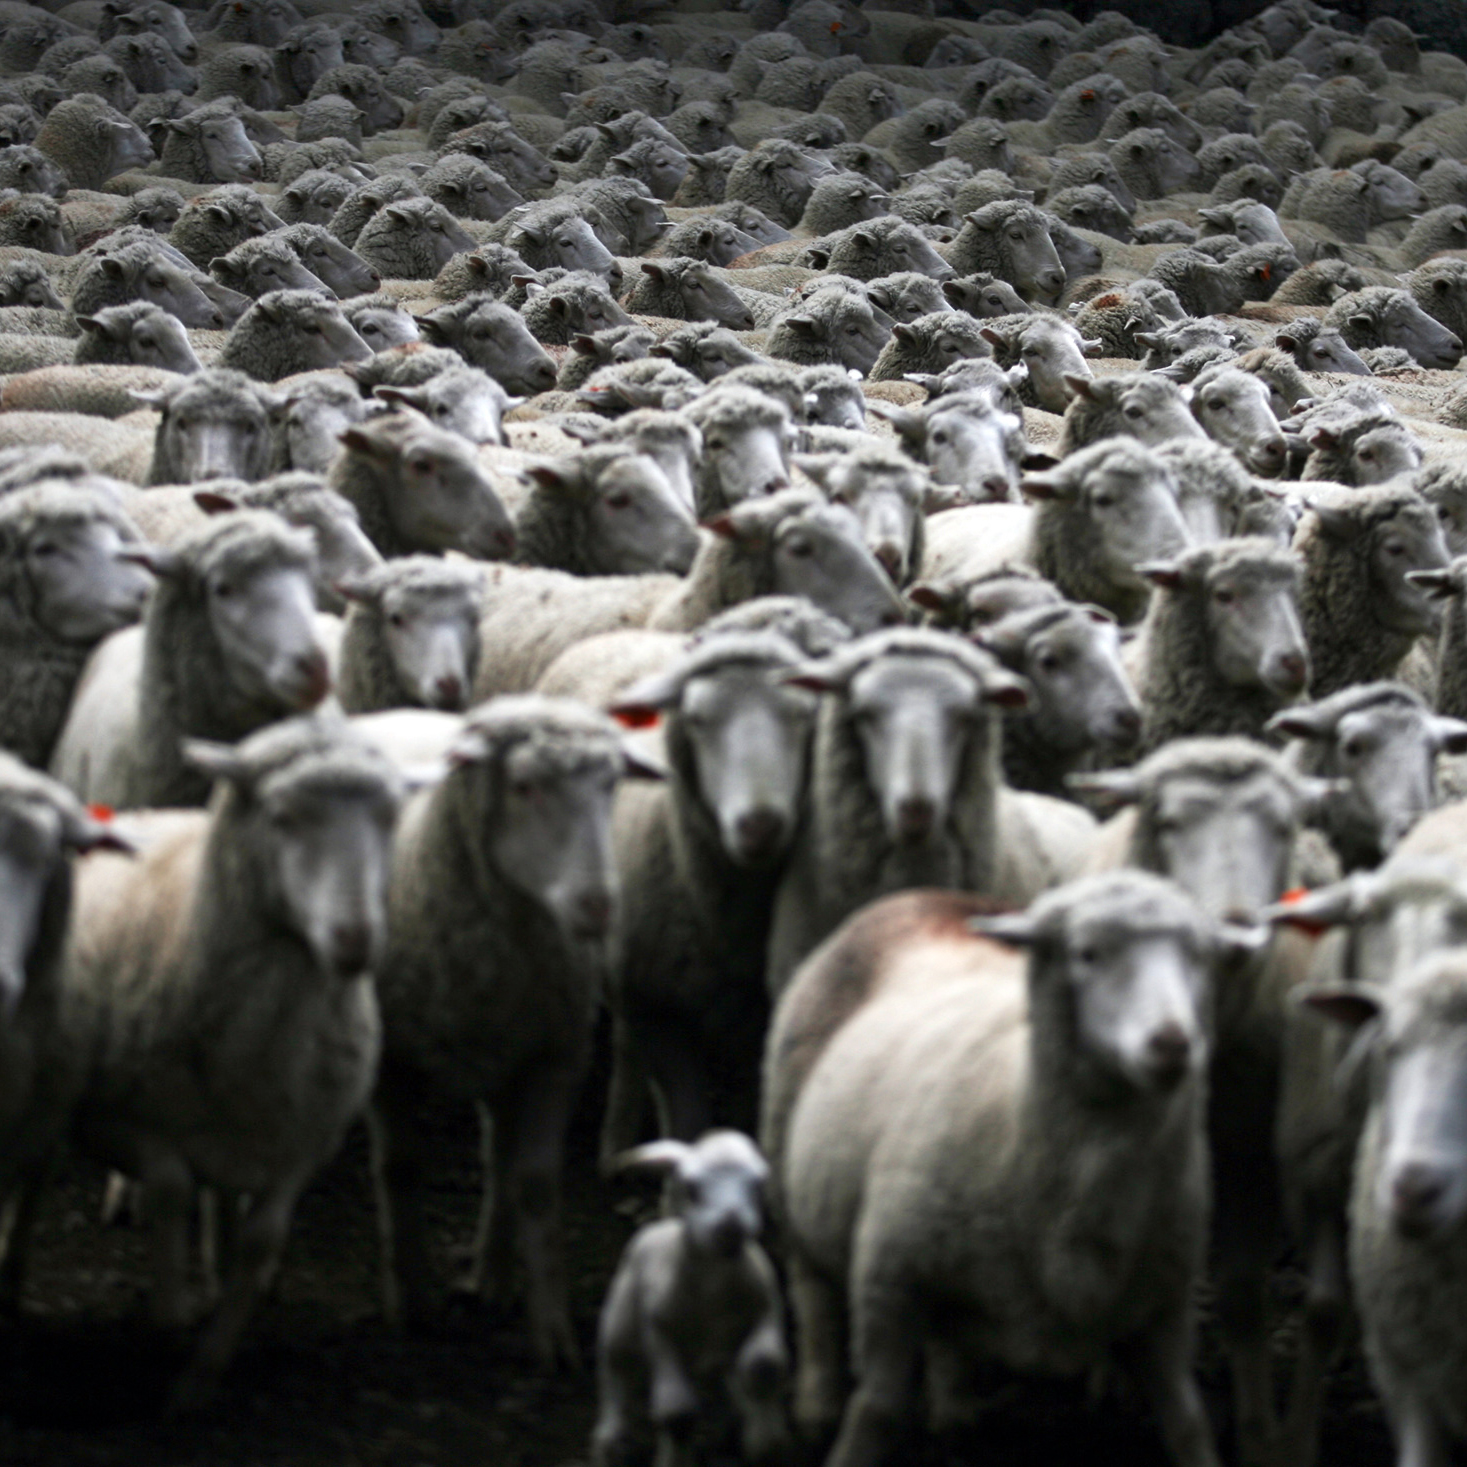 A flock of sheep are herded up.